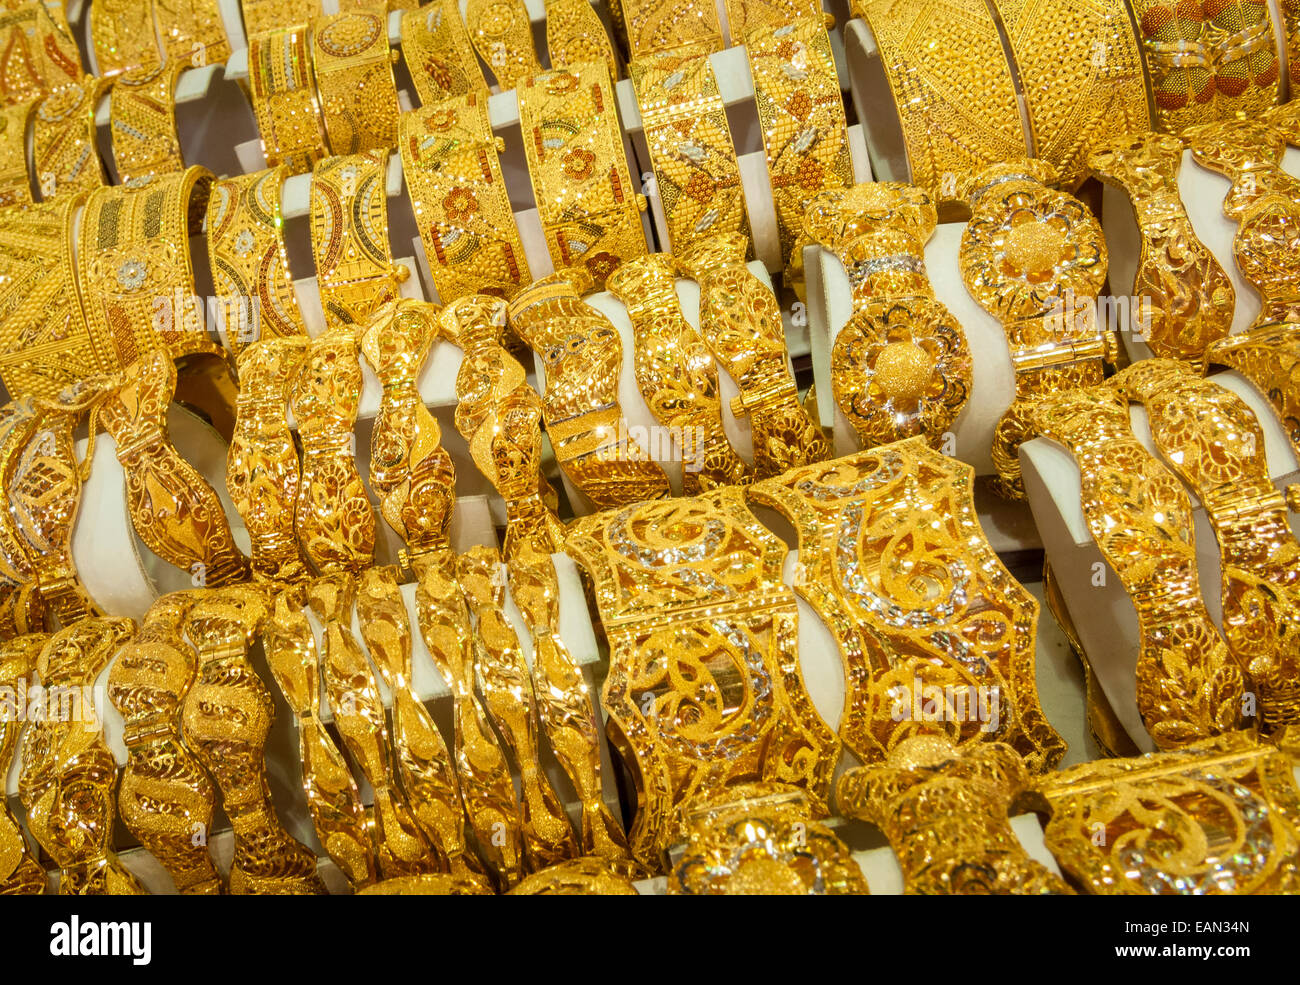 Gold Bracelets On Display At A Jewelry Store In The Gold